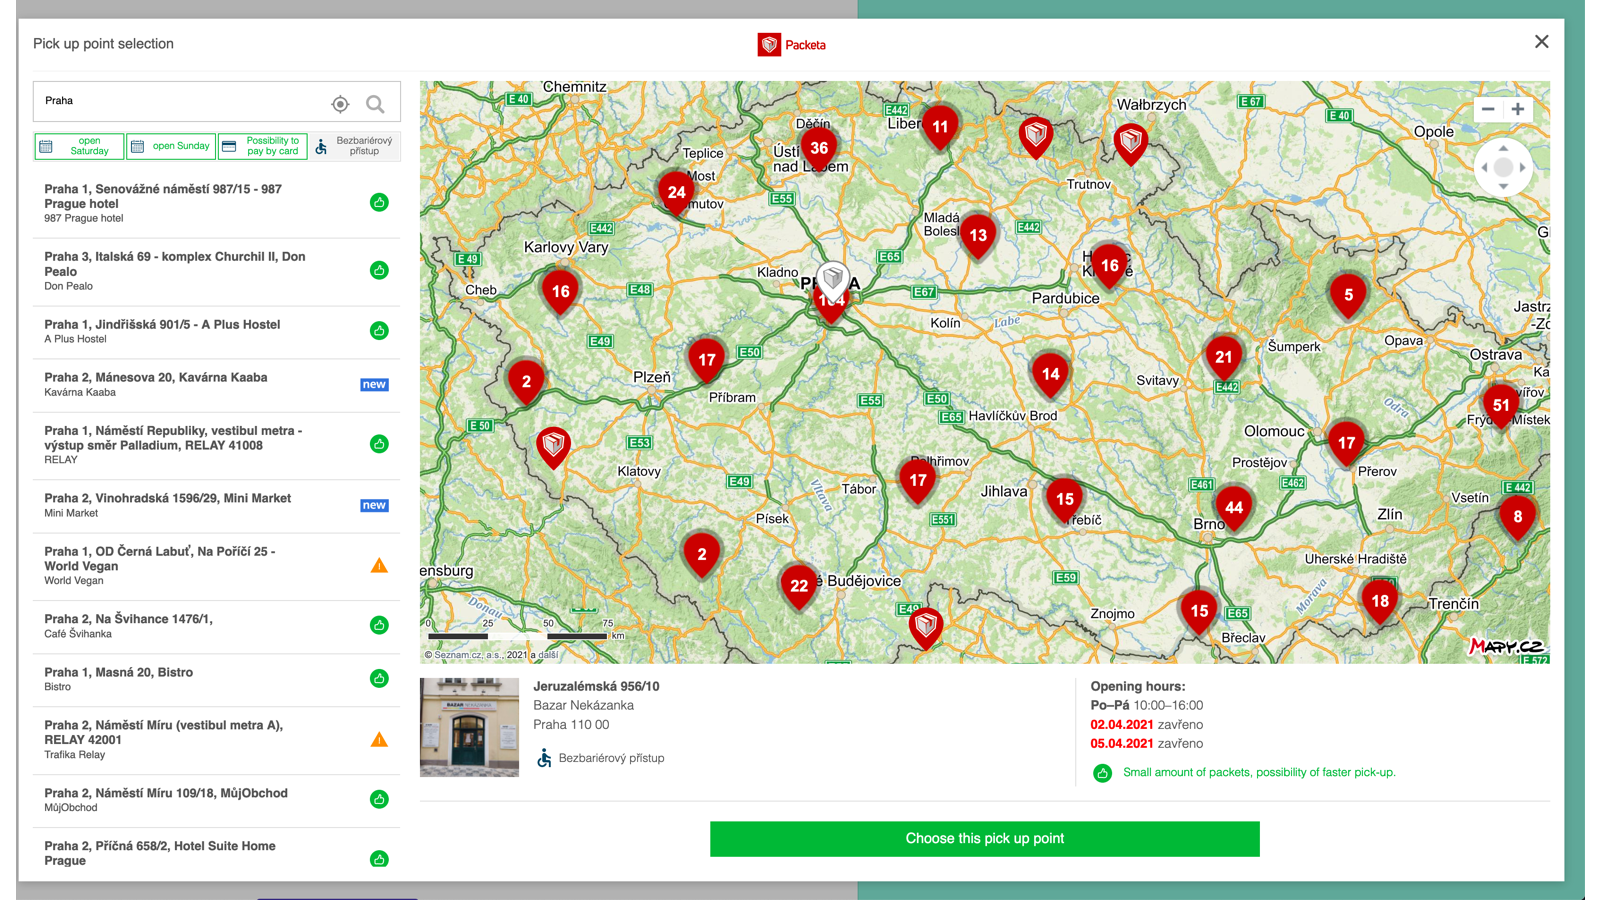 Modal for the selection of the pickup point. With a map and list